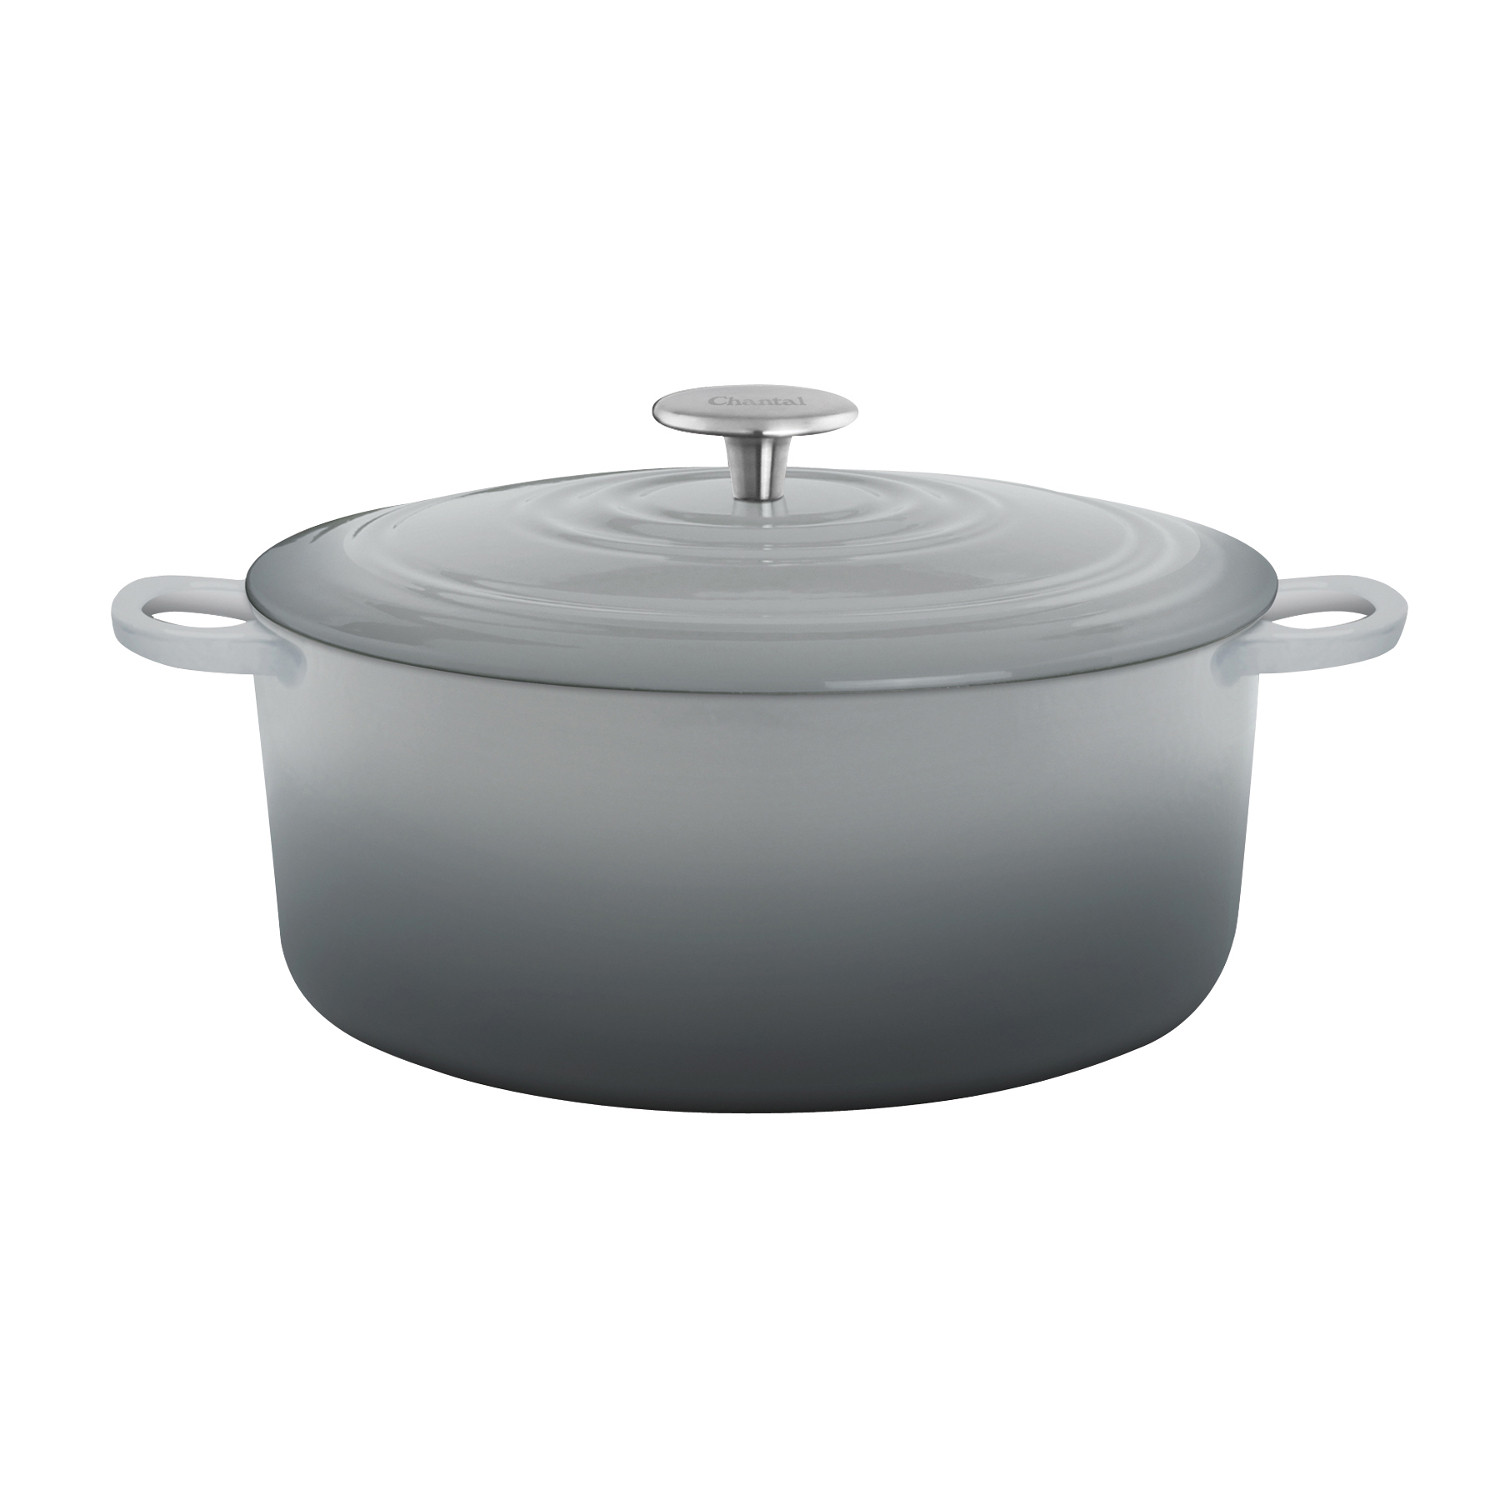 Chantal Fade Grey Round Cast Iron Casserole Dish